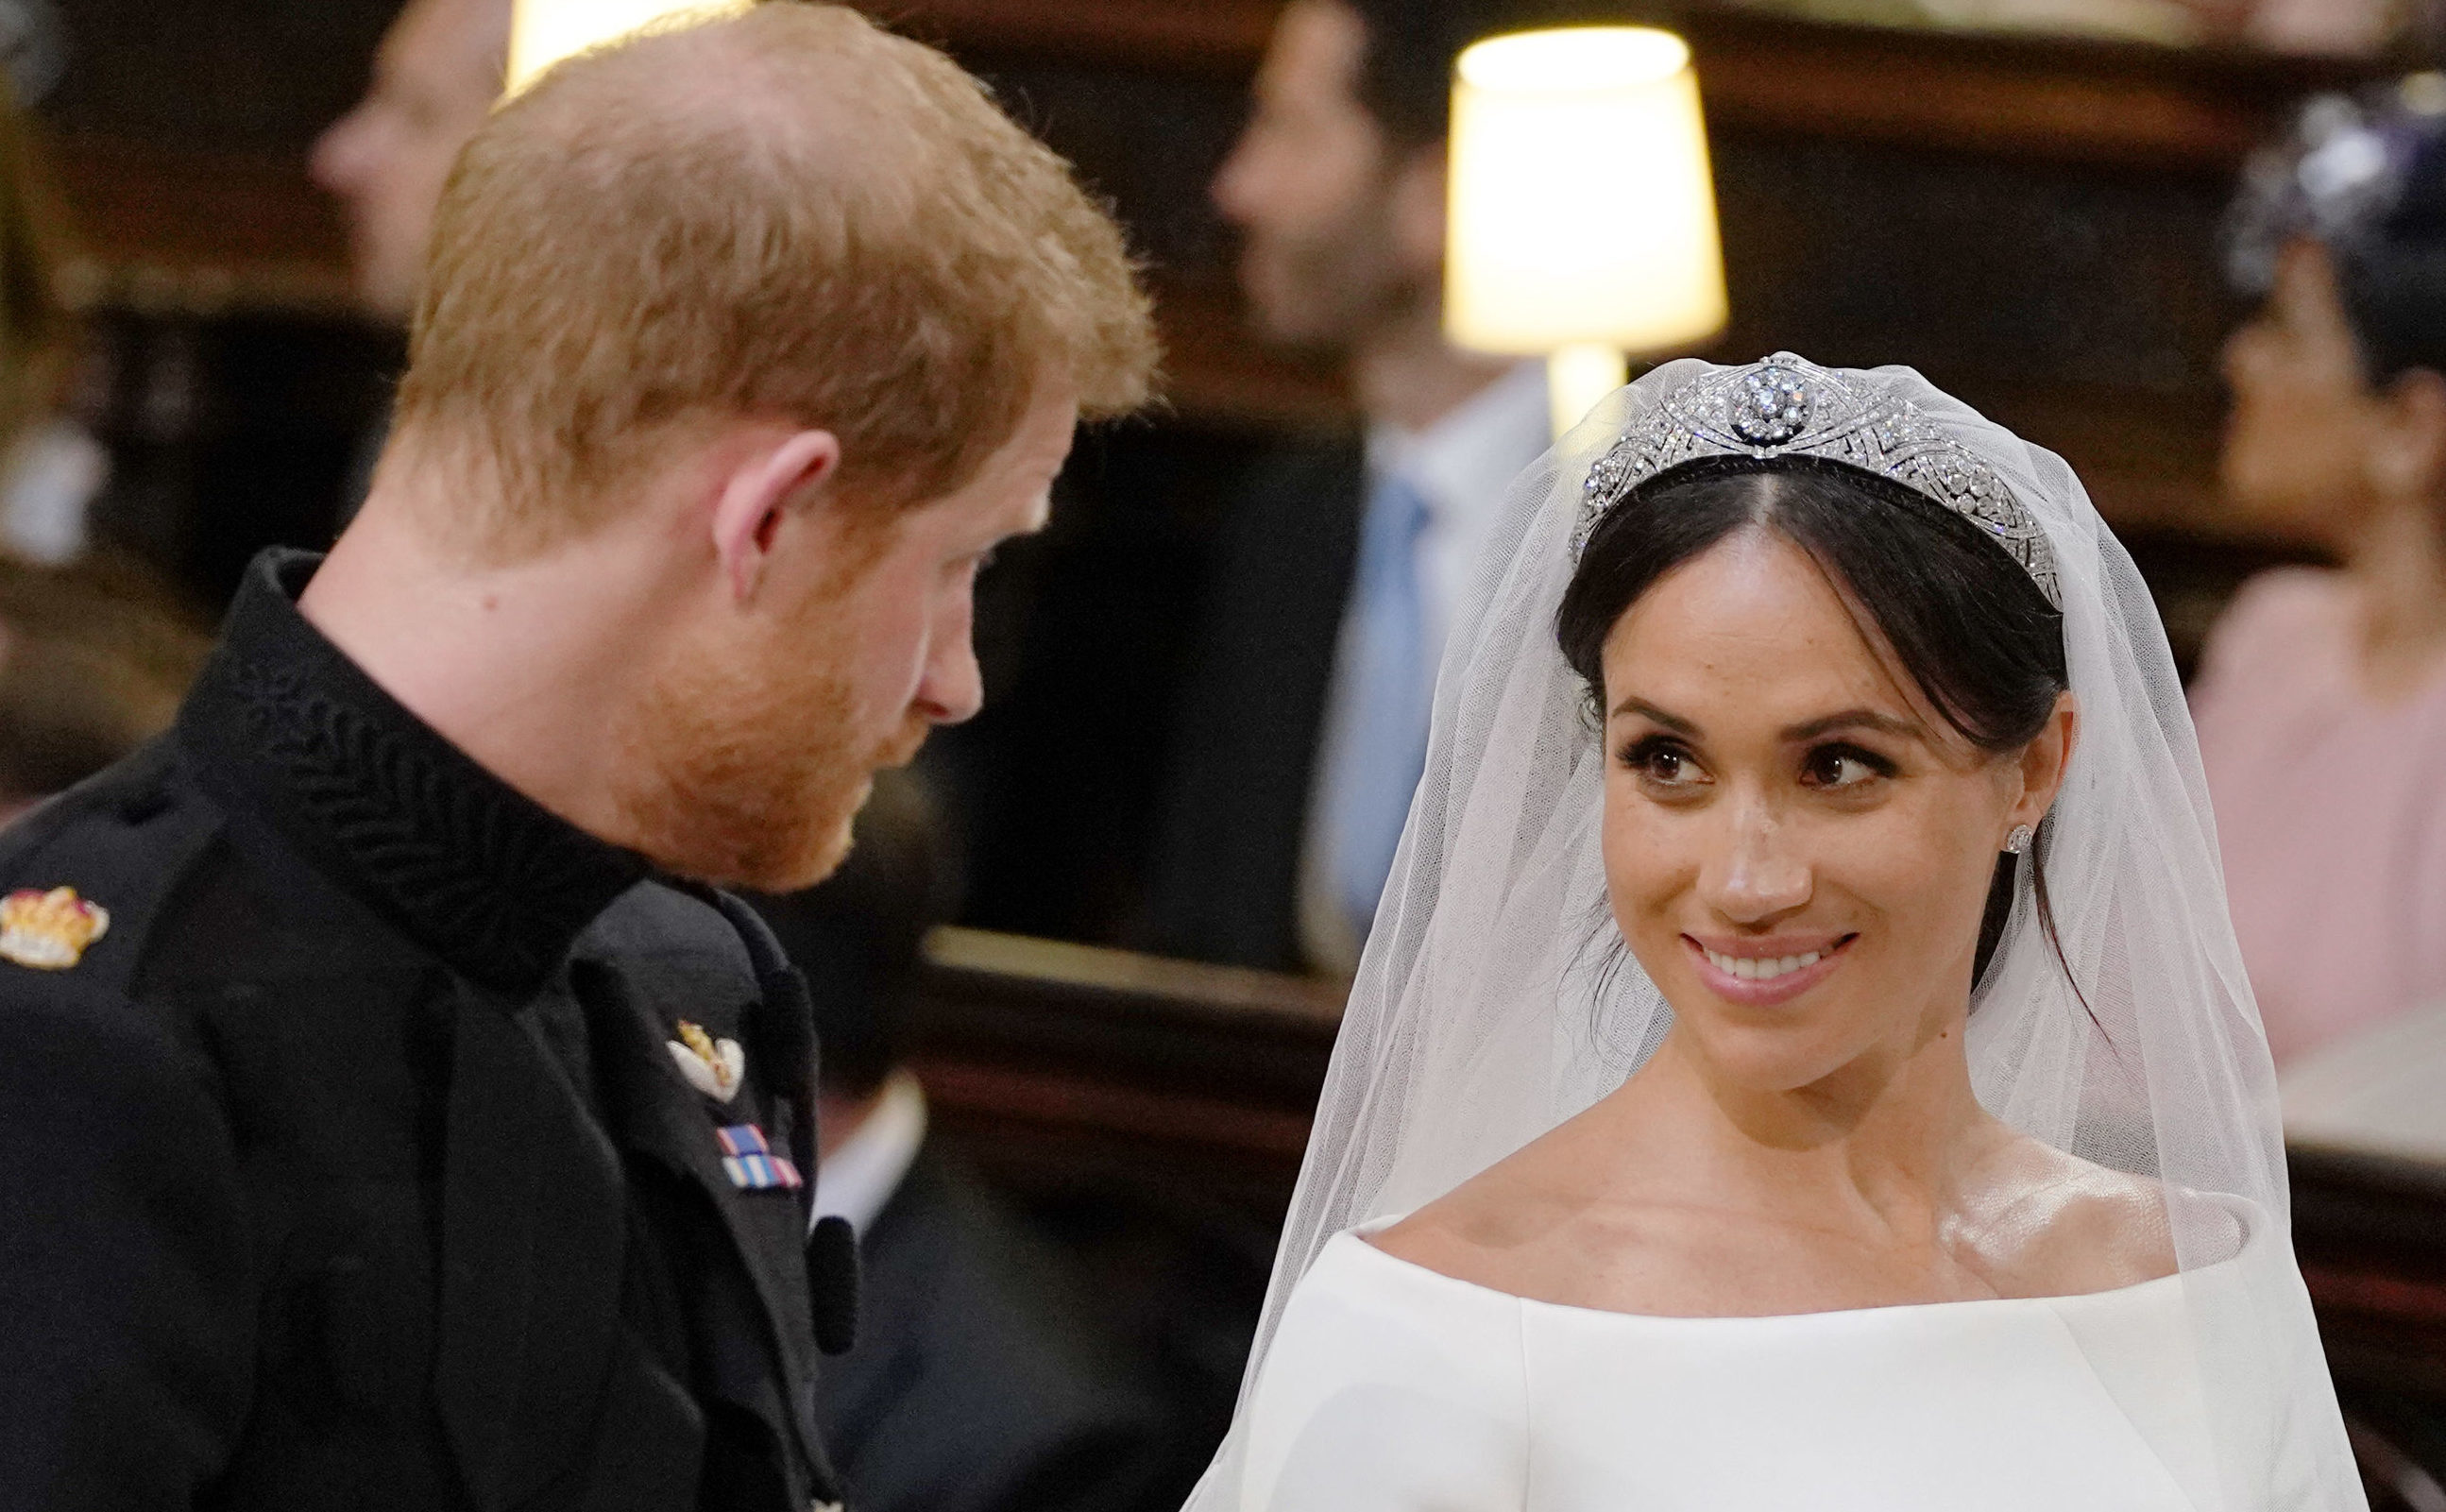 Harry and Meghan look into each other's eyes during the  service (Dominic Lipinski - WPA Pool/Getty Images)